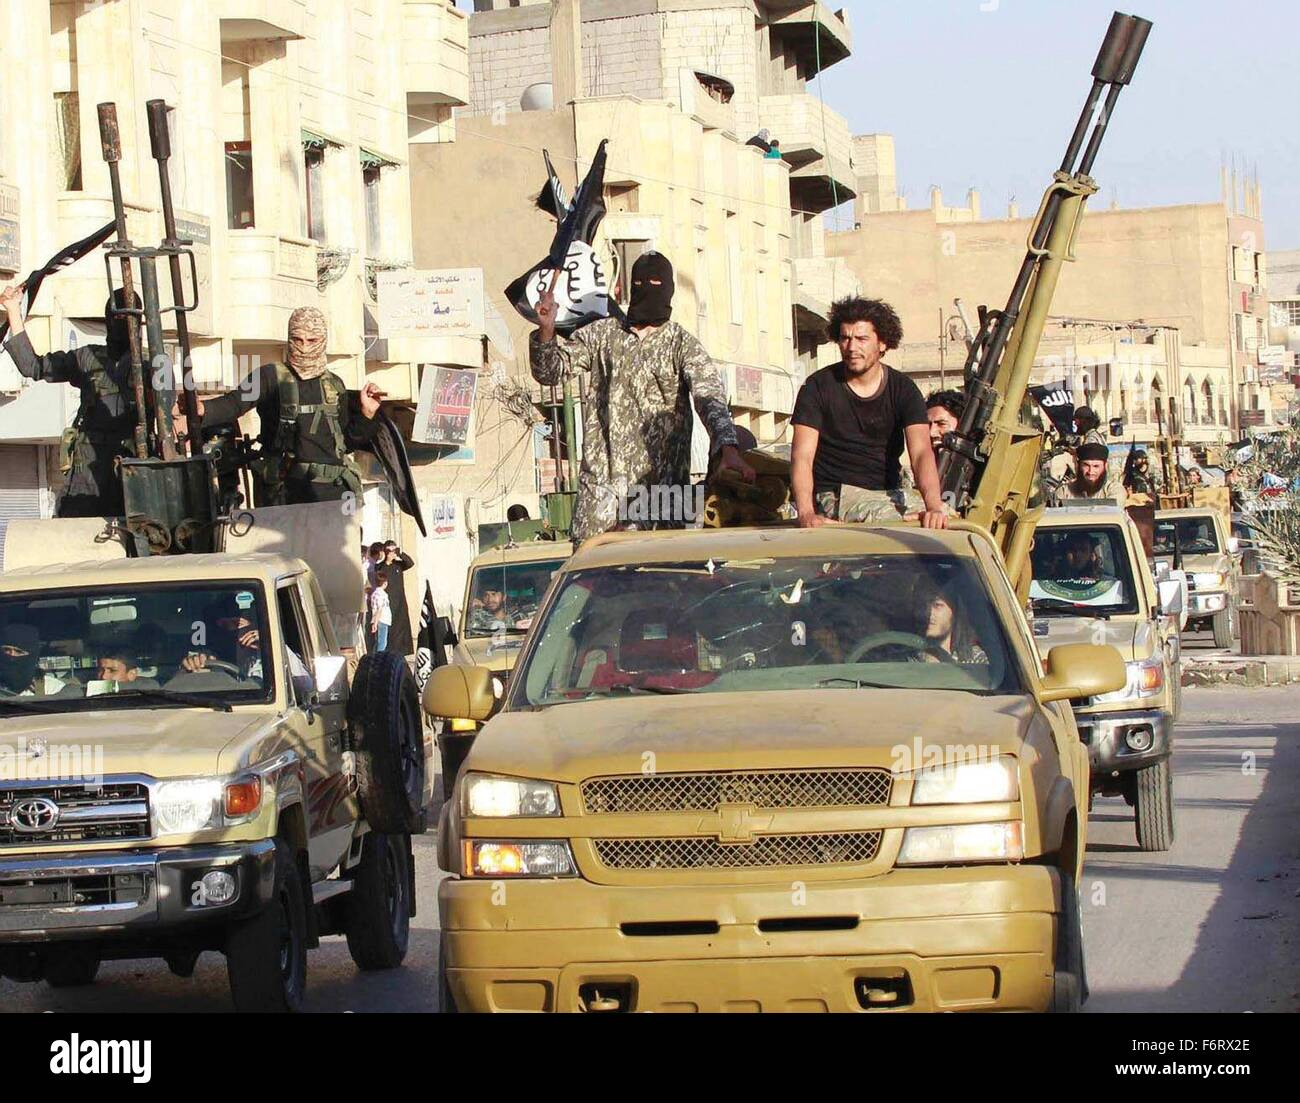 Islamic State of Iraq and the Levant propaganda photo showing masked militants parading June 30, 2014 in Northern Stock Photo